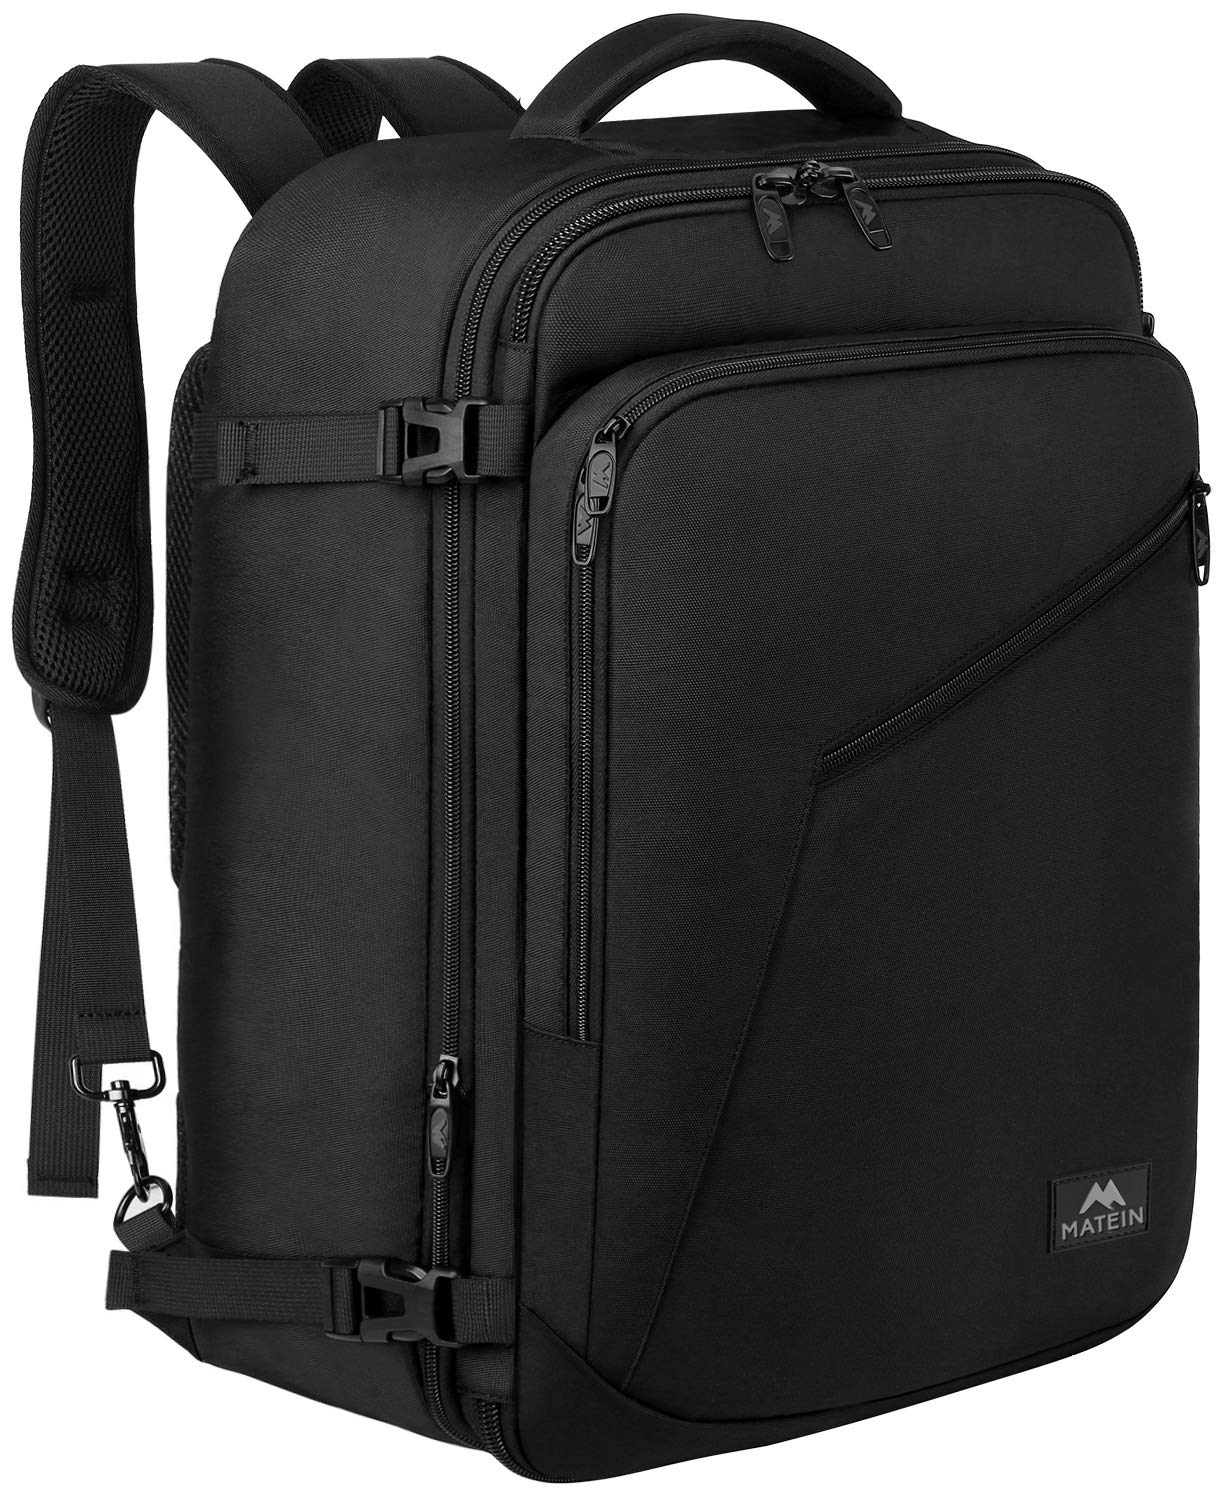 Matein Carry on Backpack, Extra Large Travel Backpack Expandable Flight Approved Weekender Bag for Men and Women, Water Resistant Lightweight Daypack for Airplane 40L, Black by MATEIN